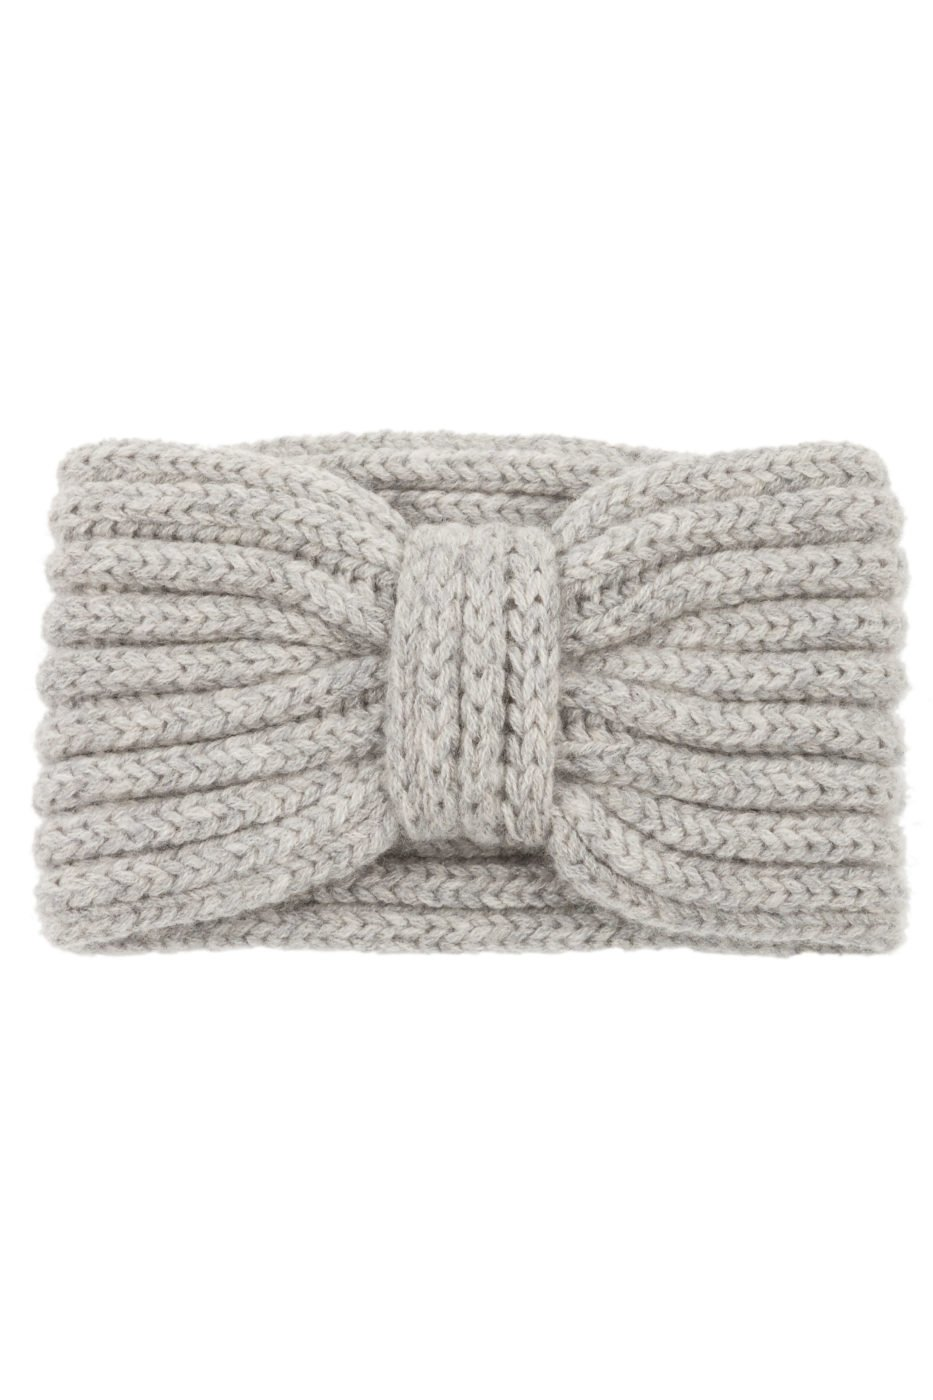 Rosie Sugden Knitted Headband